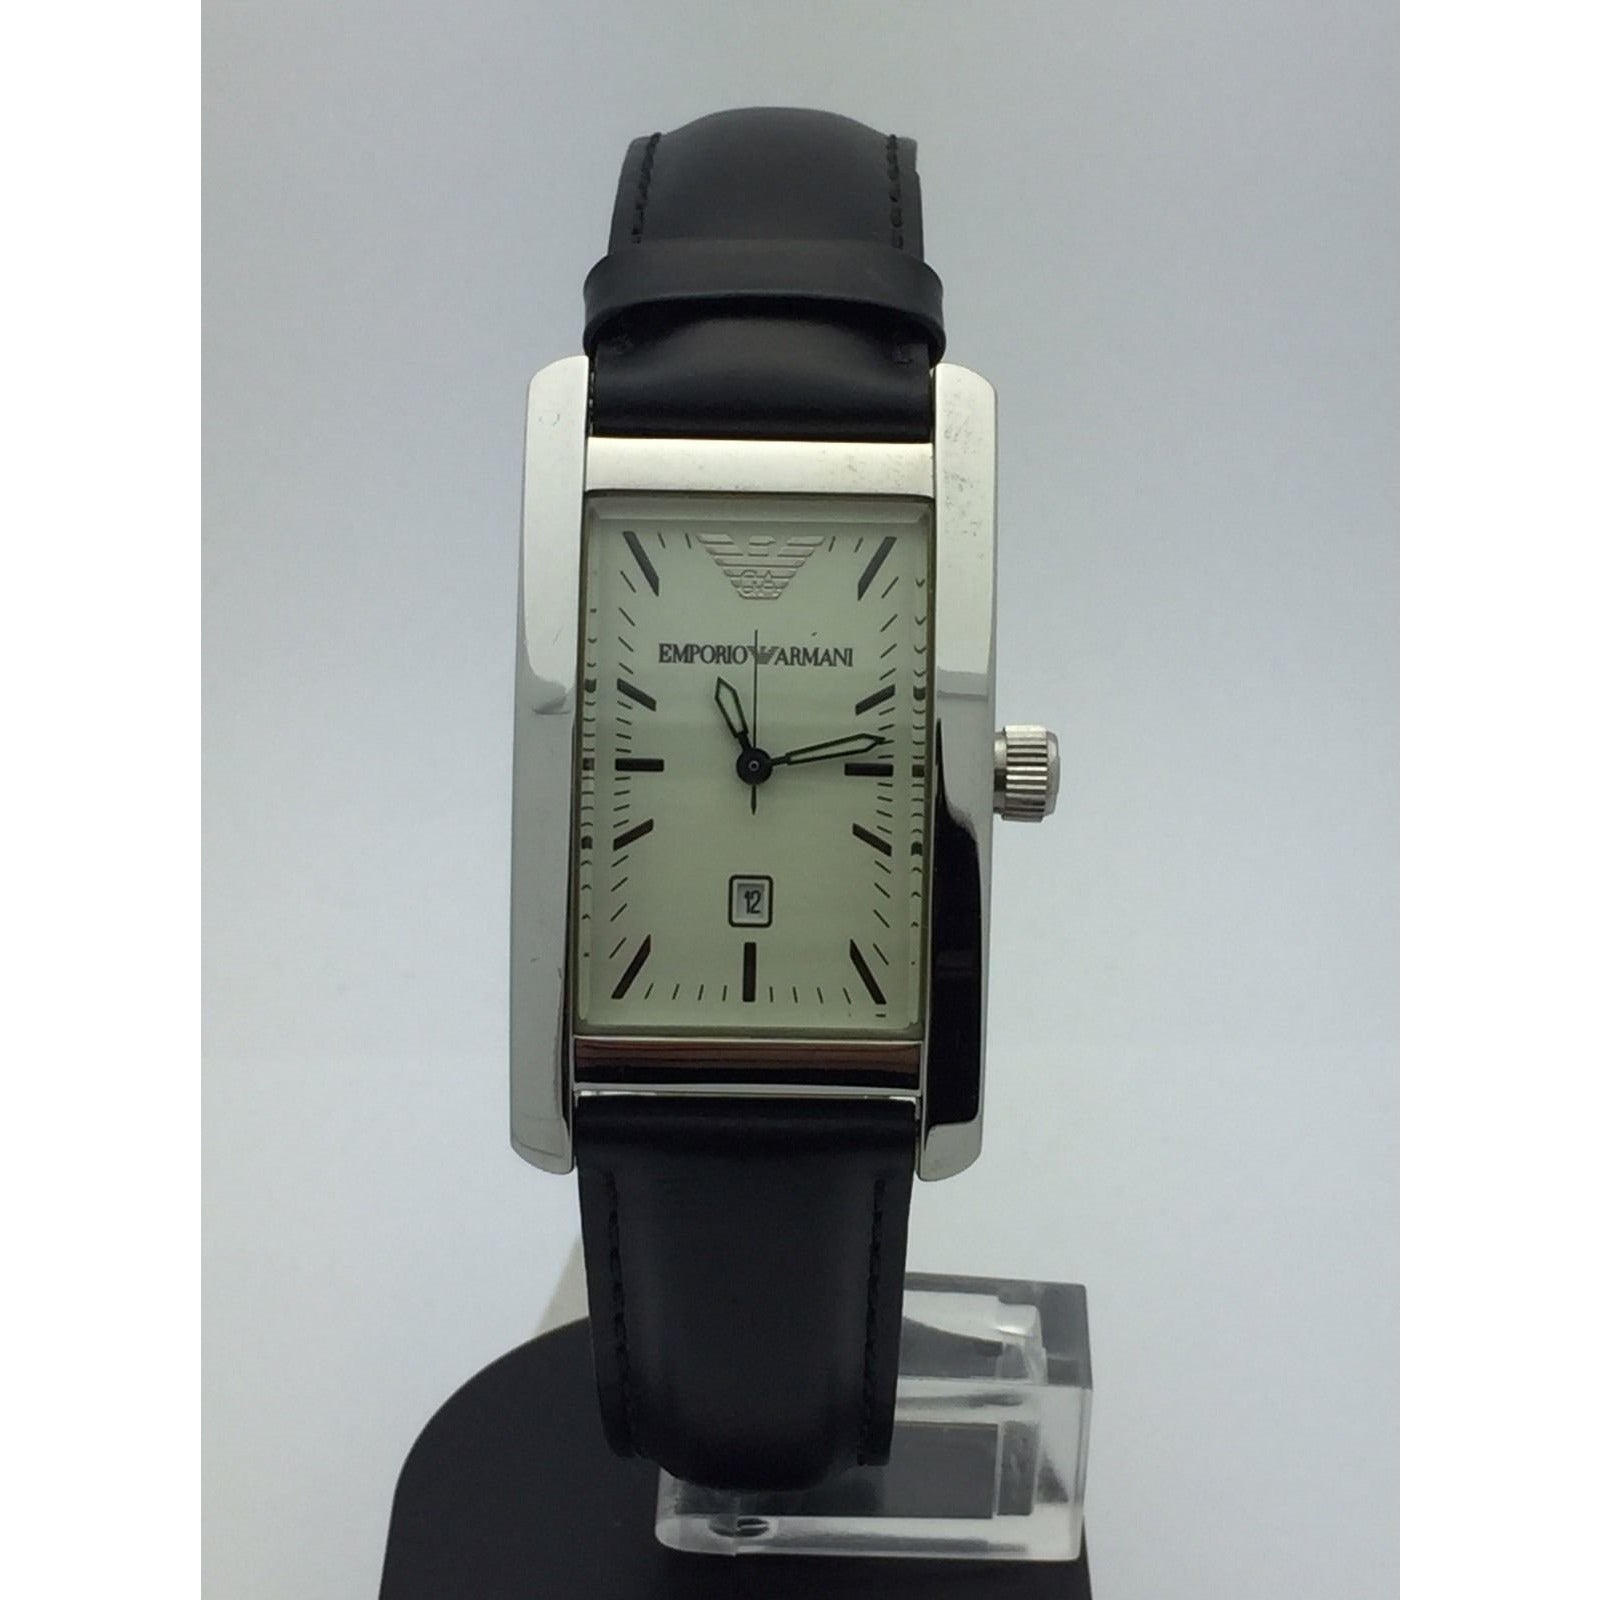 4e299aa79 Emporio Armani Unisex White Dial Stainless Black Leather 50M Watch AR0 –  ELI ADAMS JEWELERS